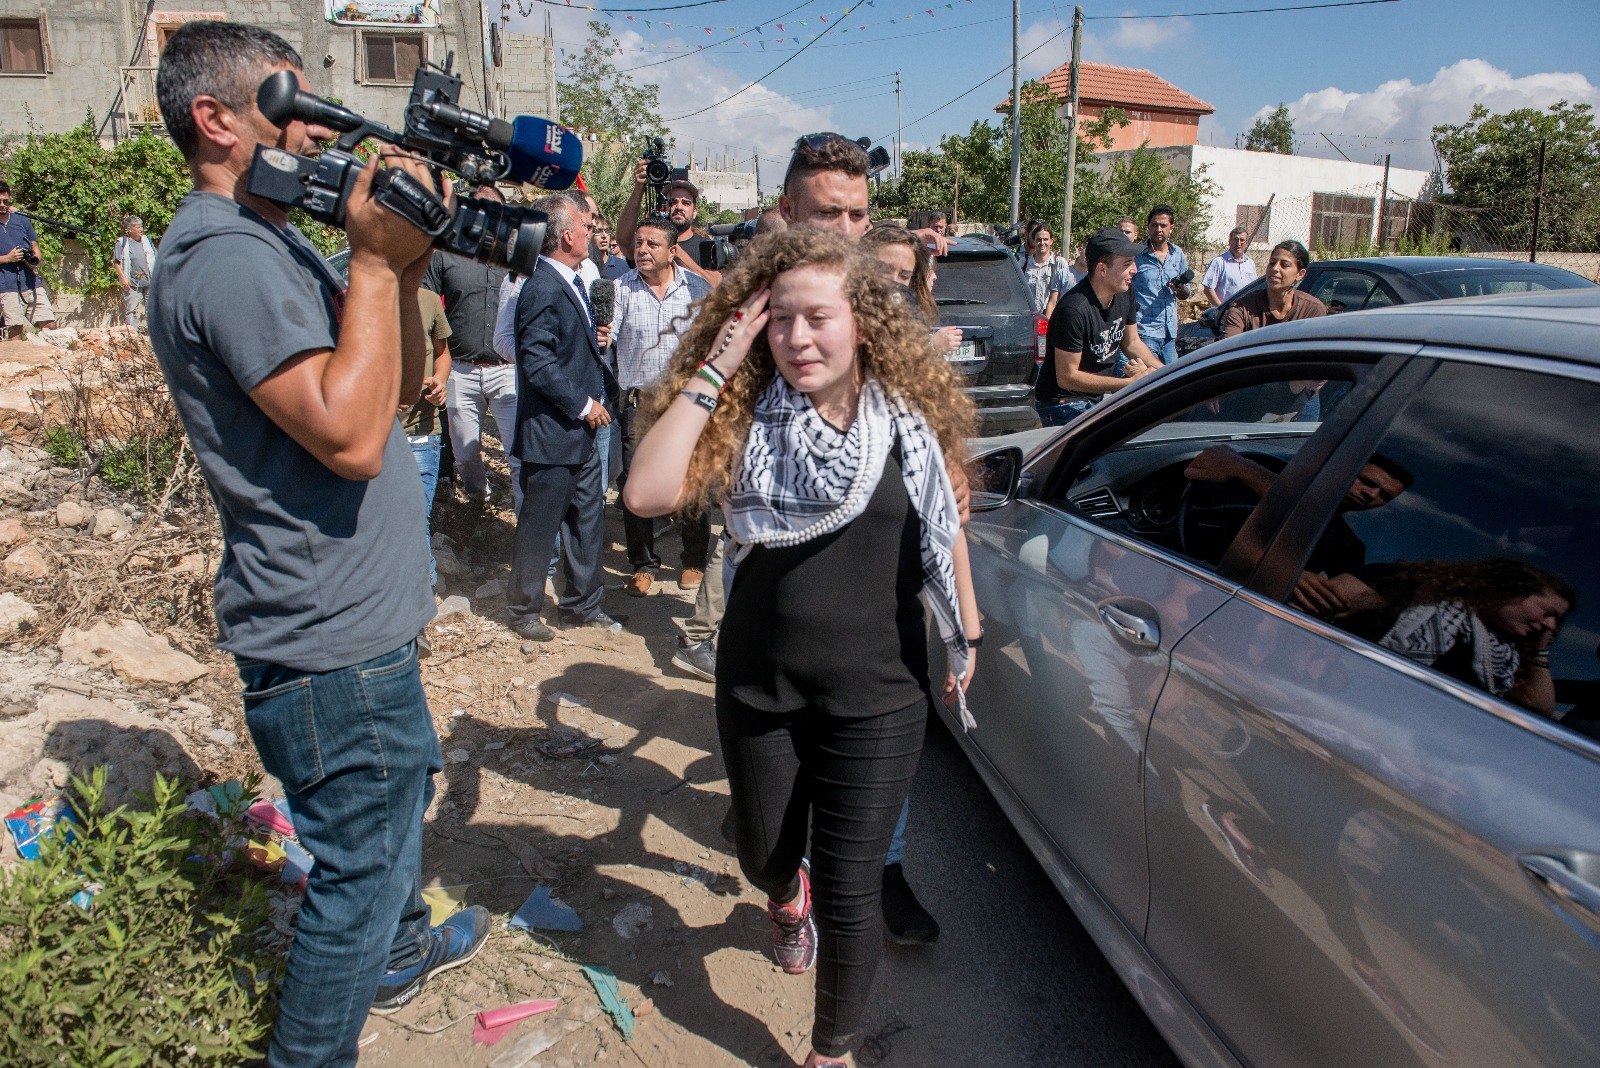 Soldiers' Kicker-Slapper Ahed Tamimi Released from Prison